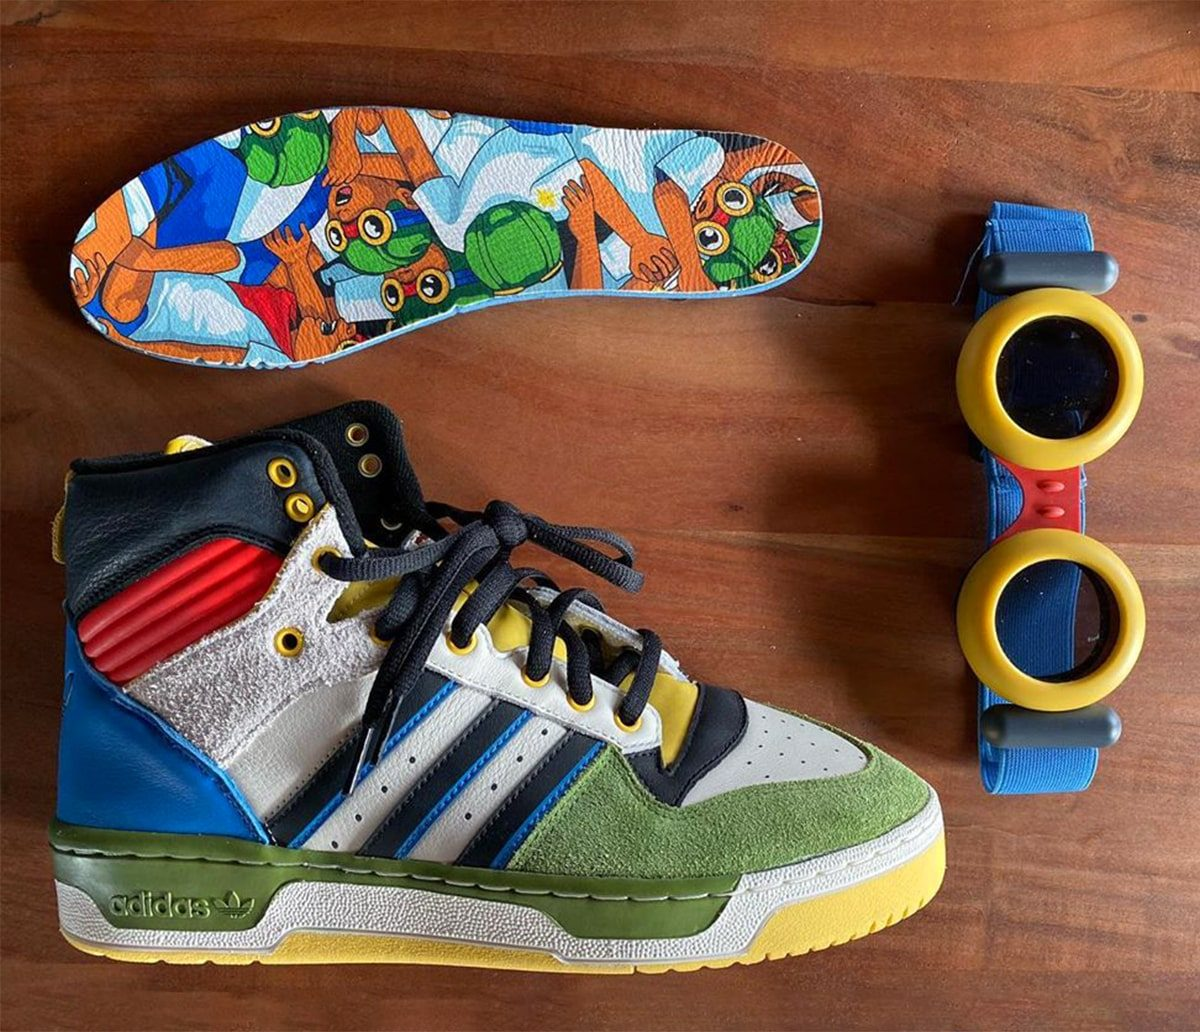 Hebru Brantley Buddies-Up with BBC on the adidas Rivalry Hi for Art Basel